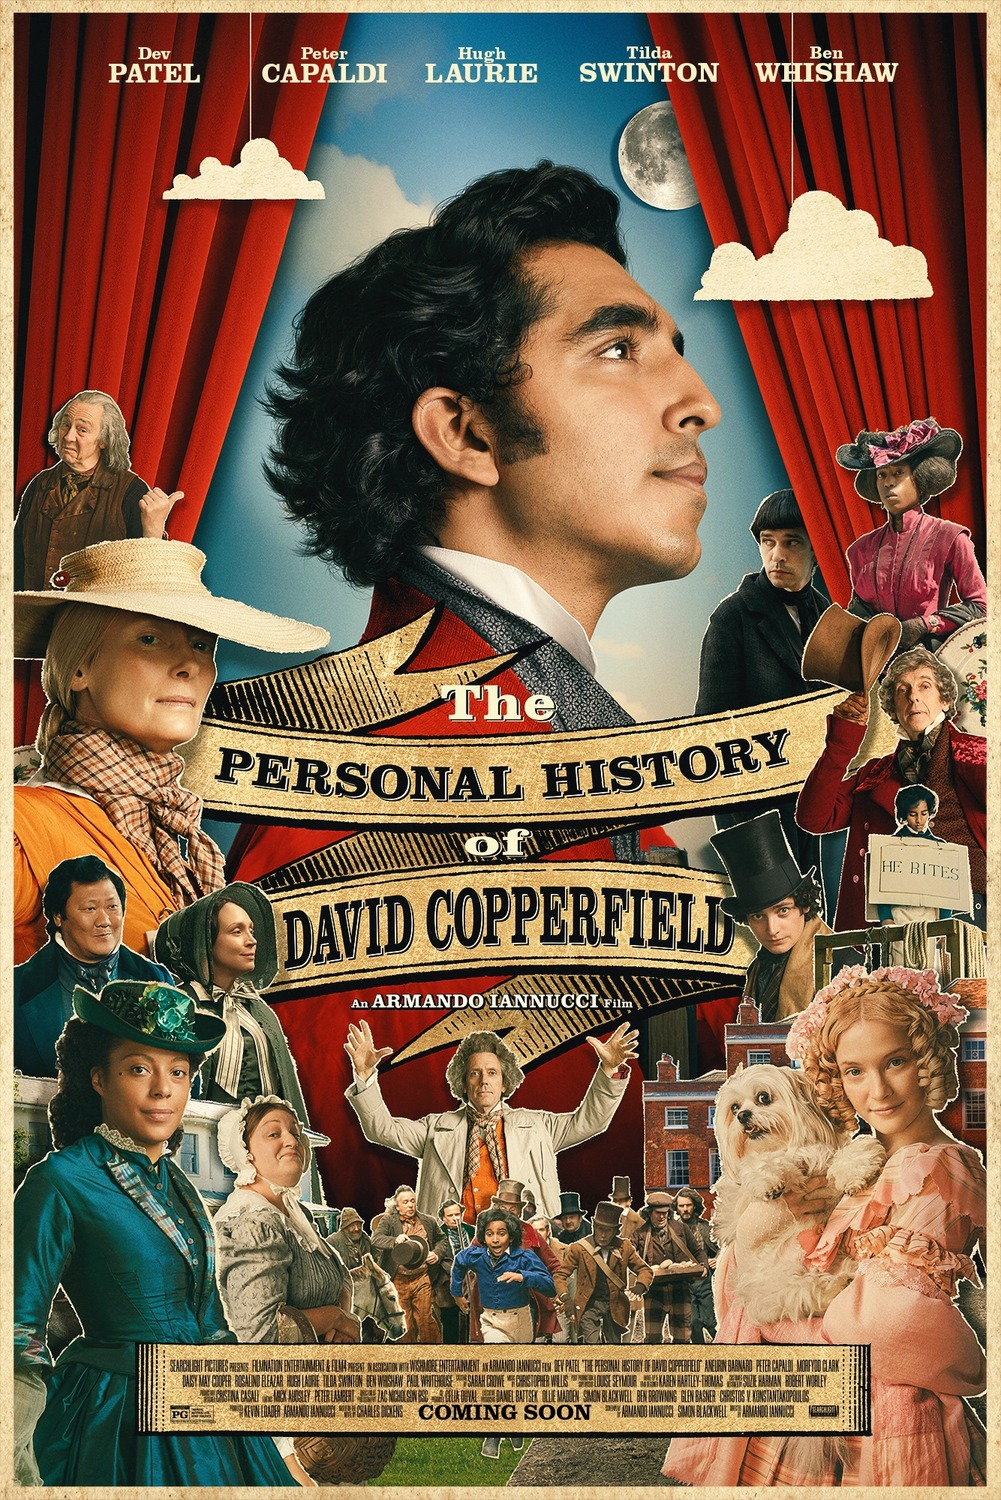 The Personal History of David